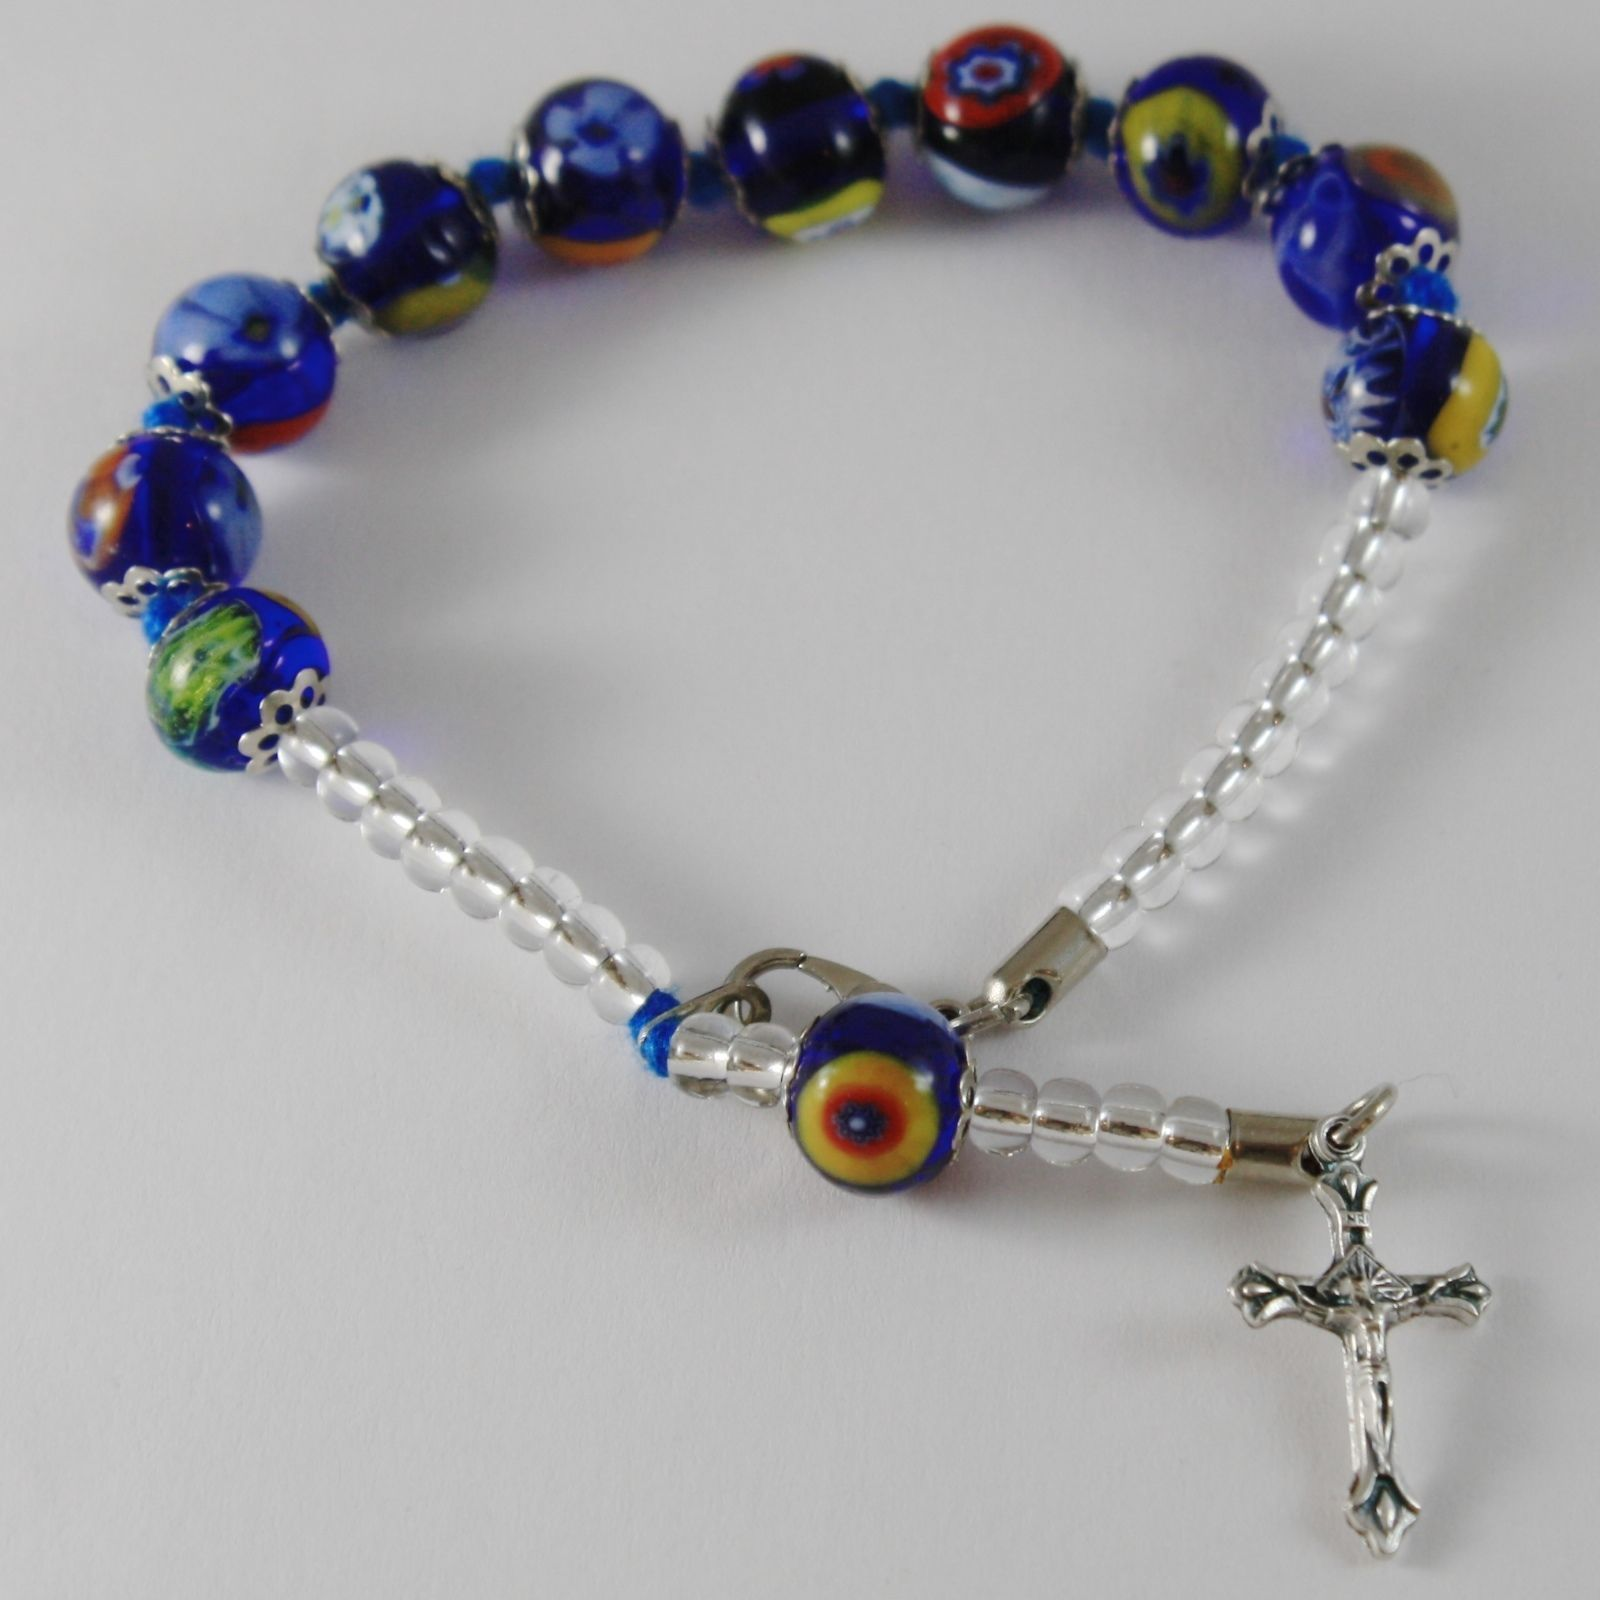 BRACELET ANTICA MURRINA VENEZIA WITH MURANO GLASS BLUE ROSARY WITH CROSS